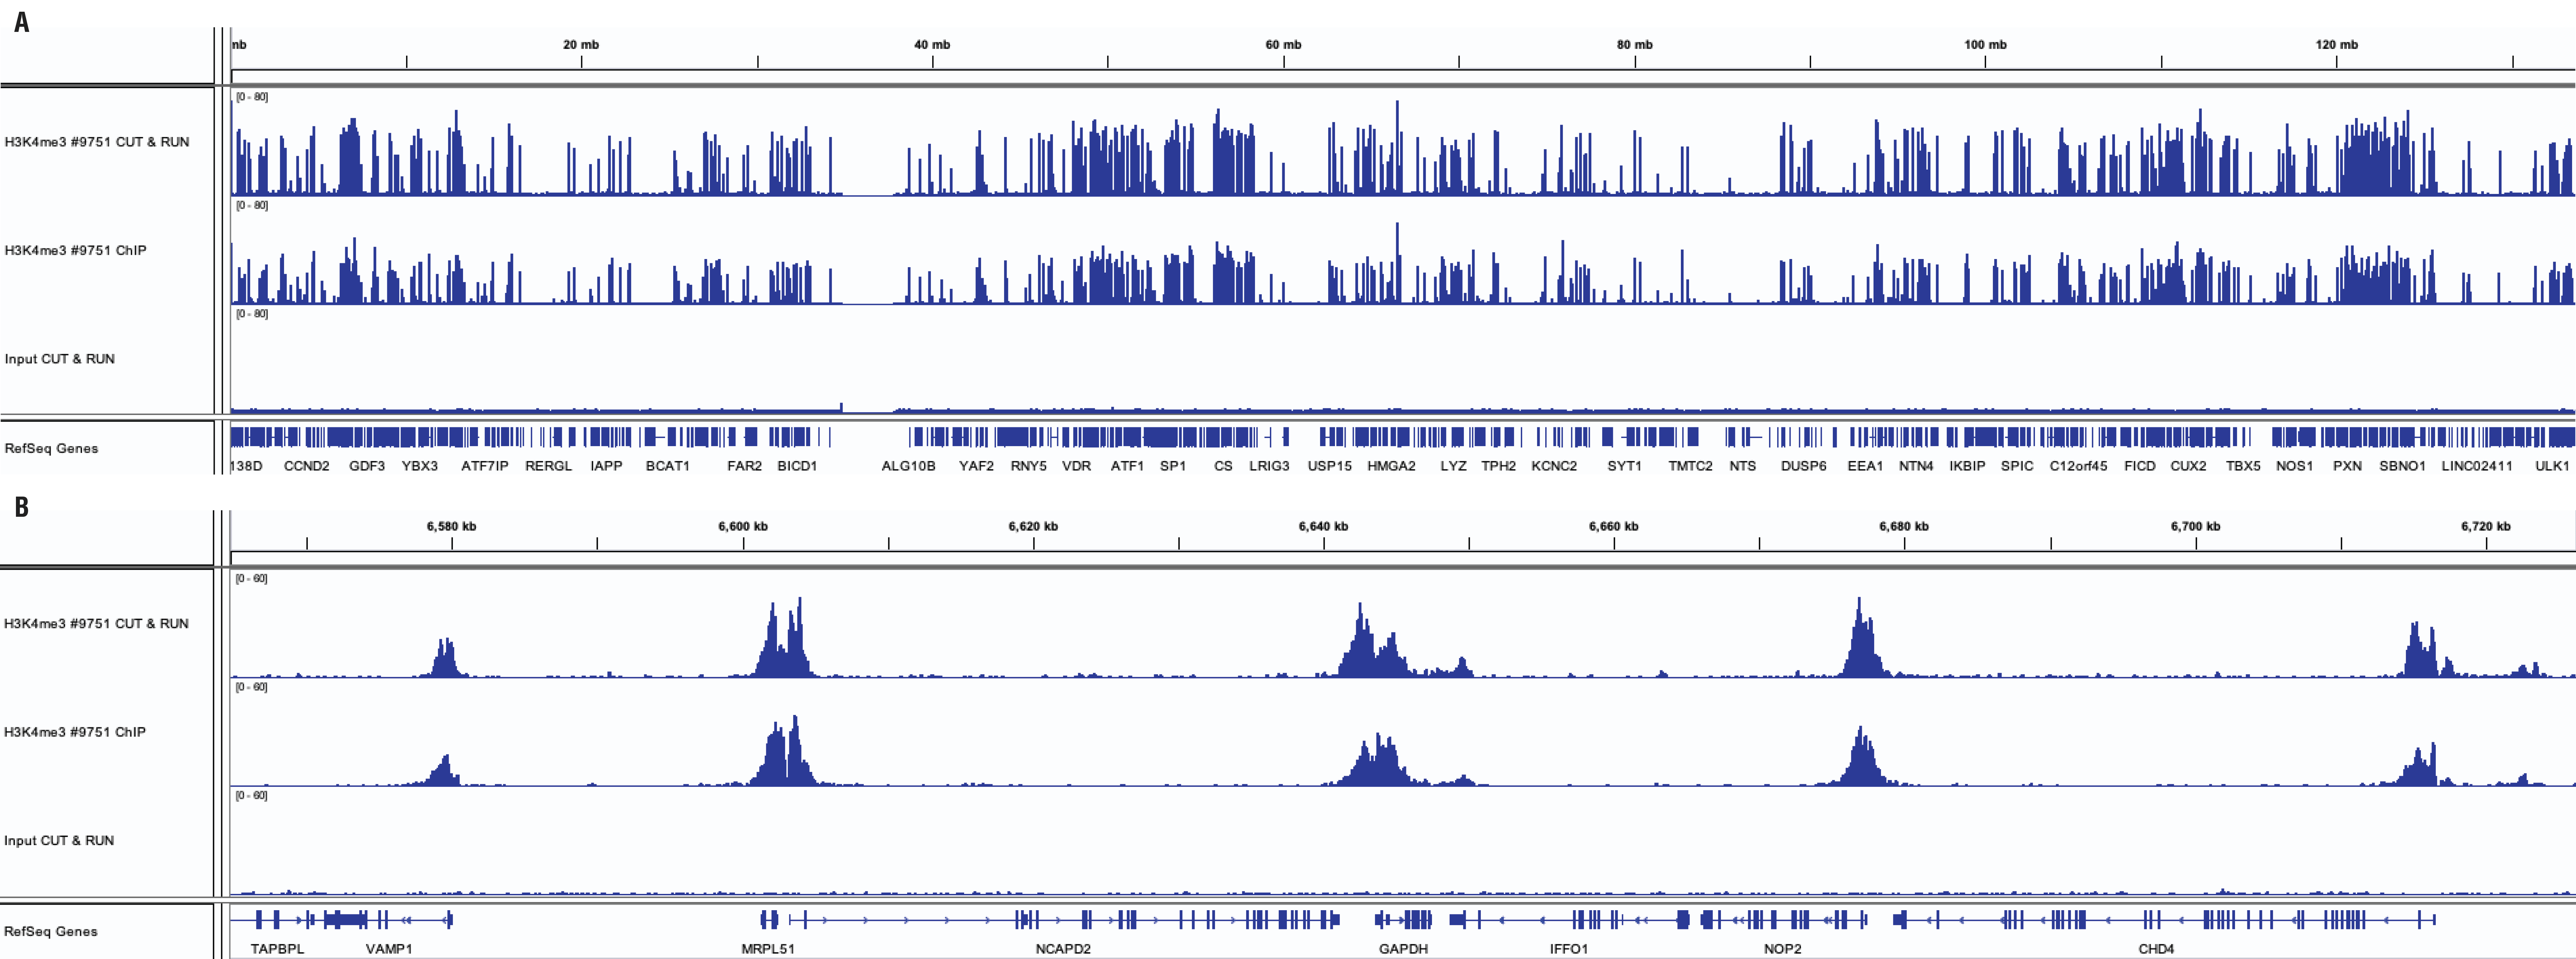 H3K4me3 sequencing results for CUT&RUN and ChIP